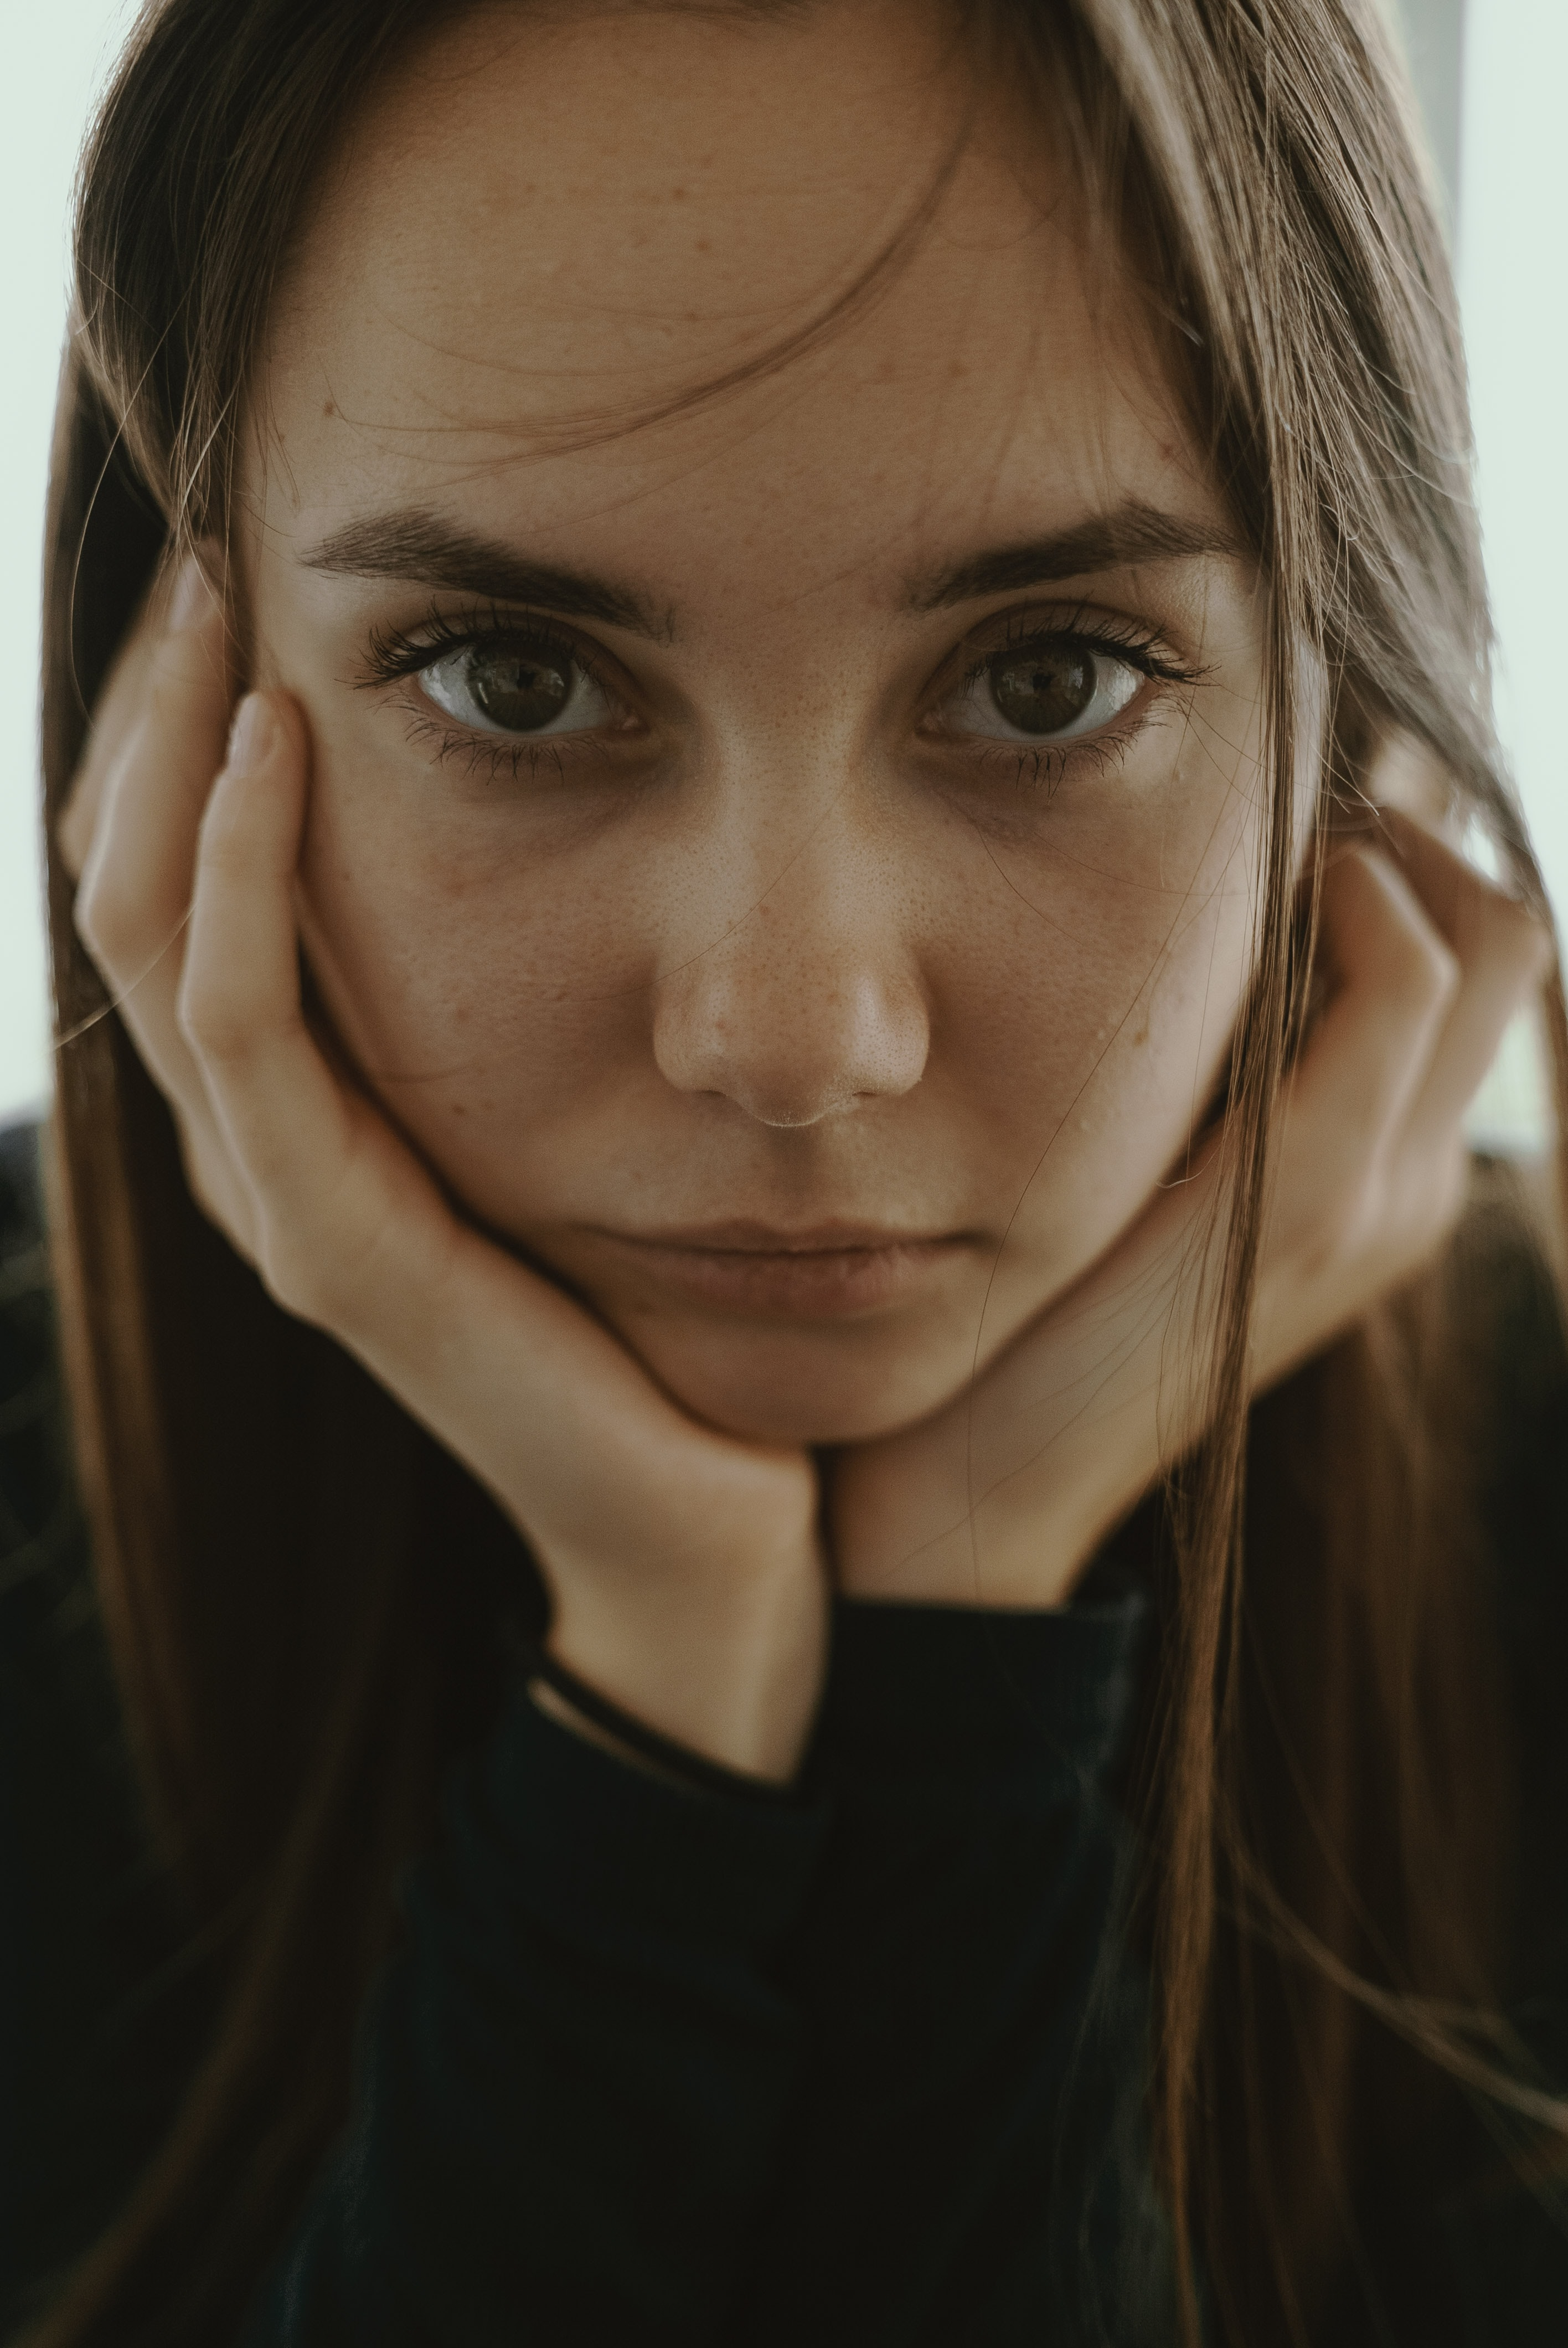 20+ Face Pictures | Download Free Images on Unsplash